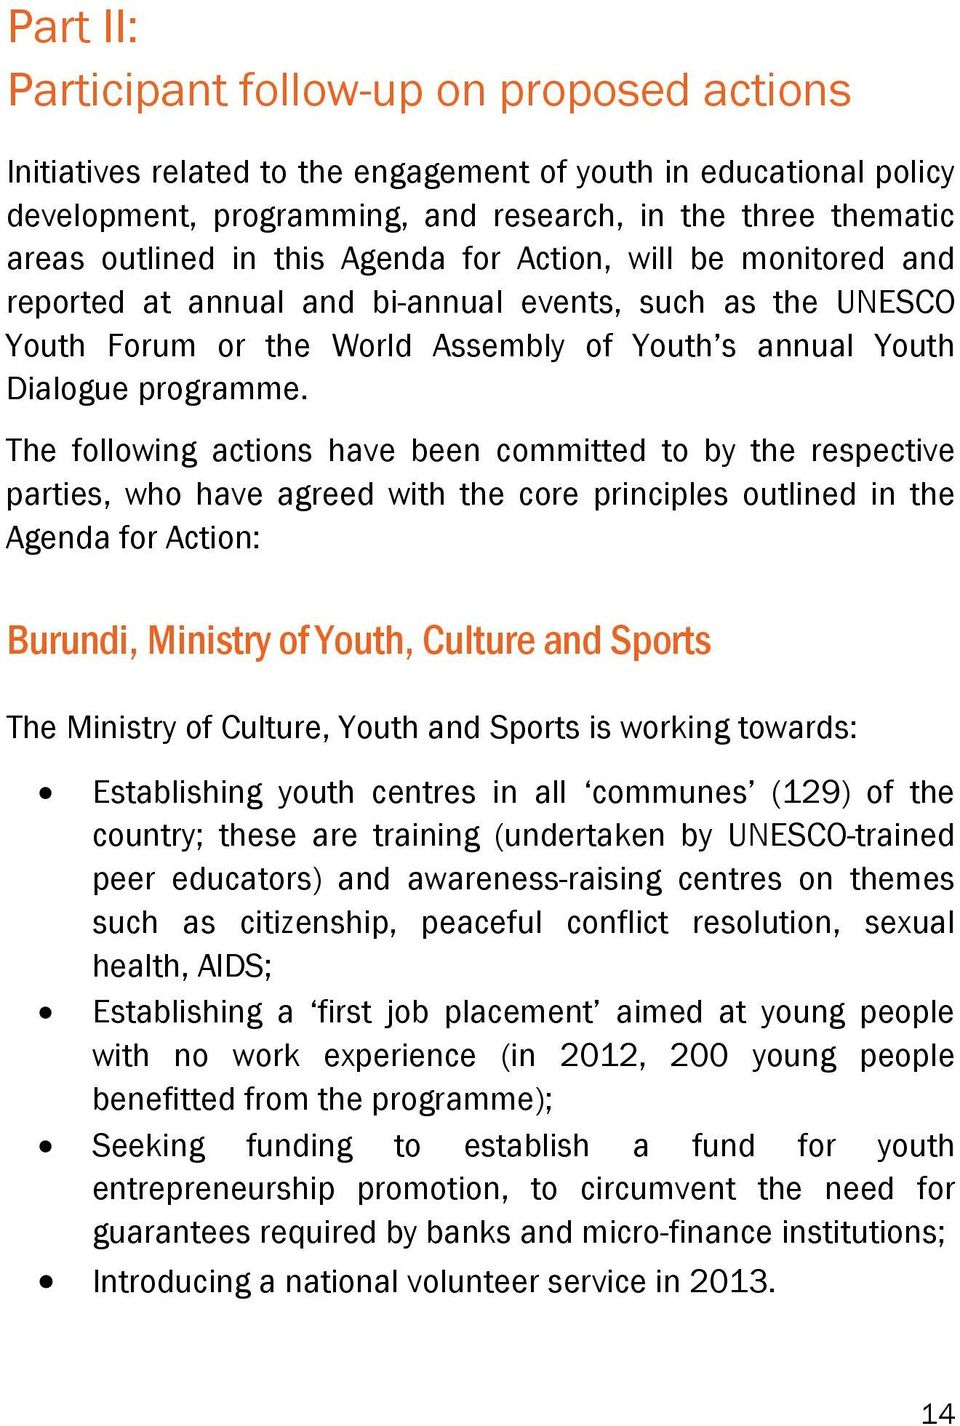 The following actions have been committed to by the respective parties, who have agreed with the core principles outlined in the Agenda for Action: Burundi, Ministry of Youth, Culture and Sports The